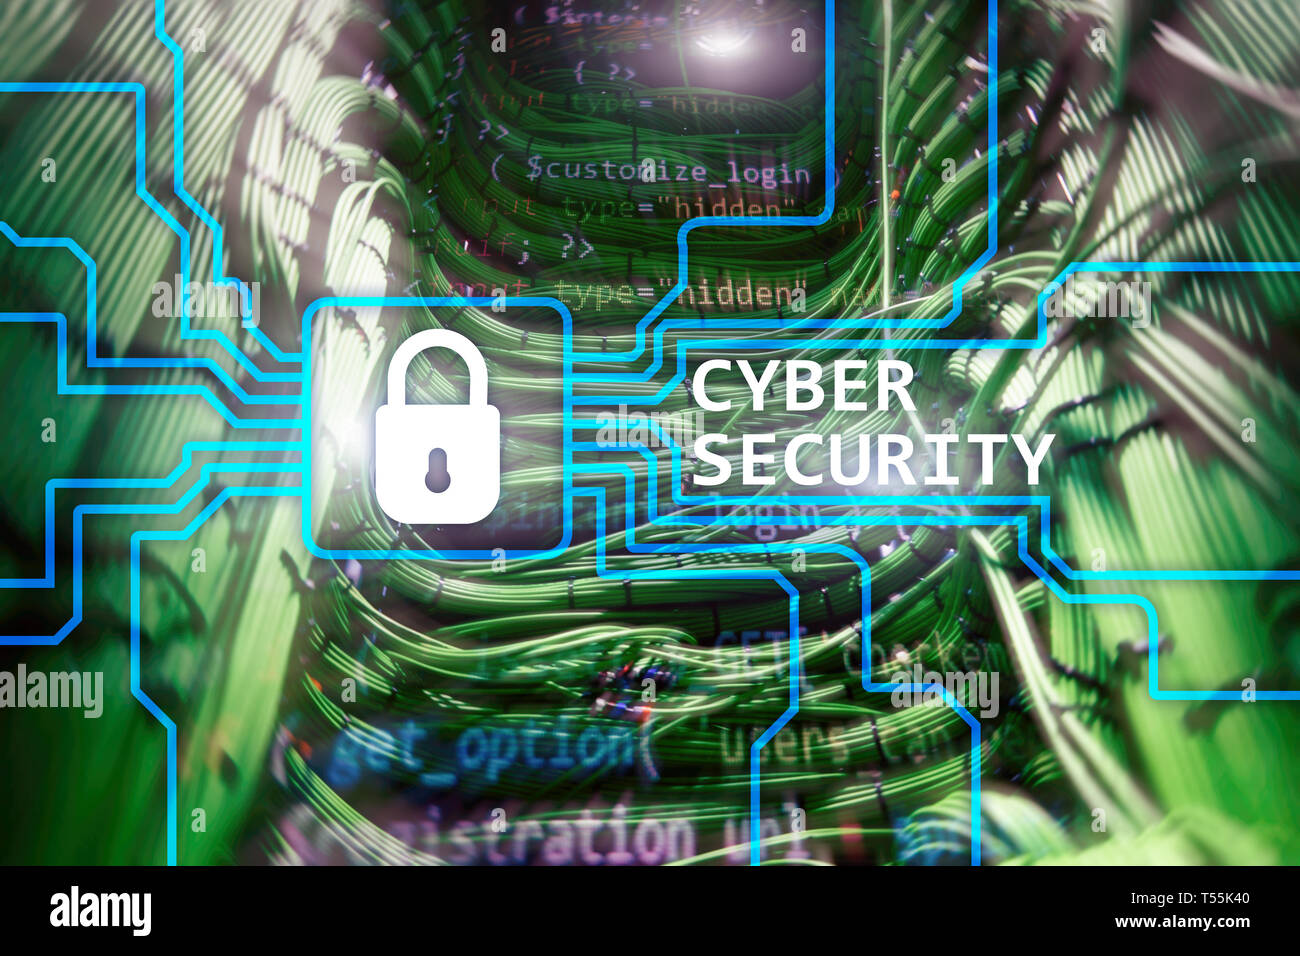 Cyber security, information privacy and data protection concept on server room background. - Stock Image